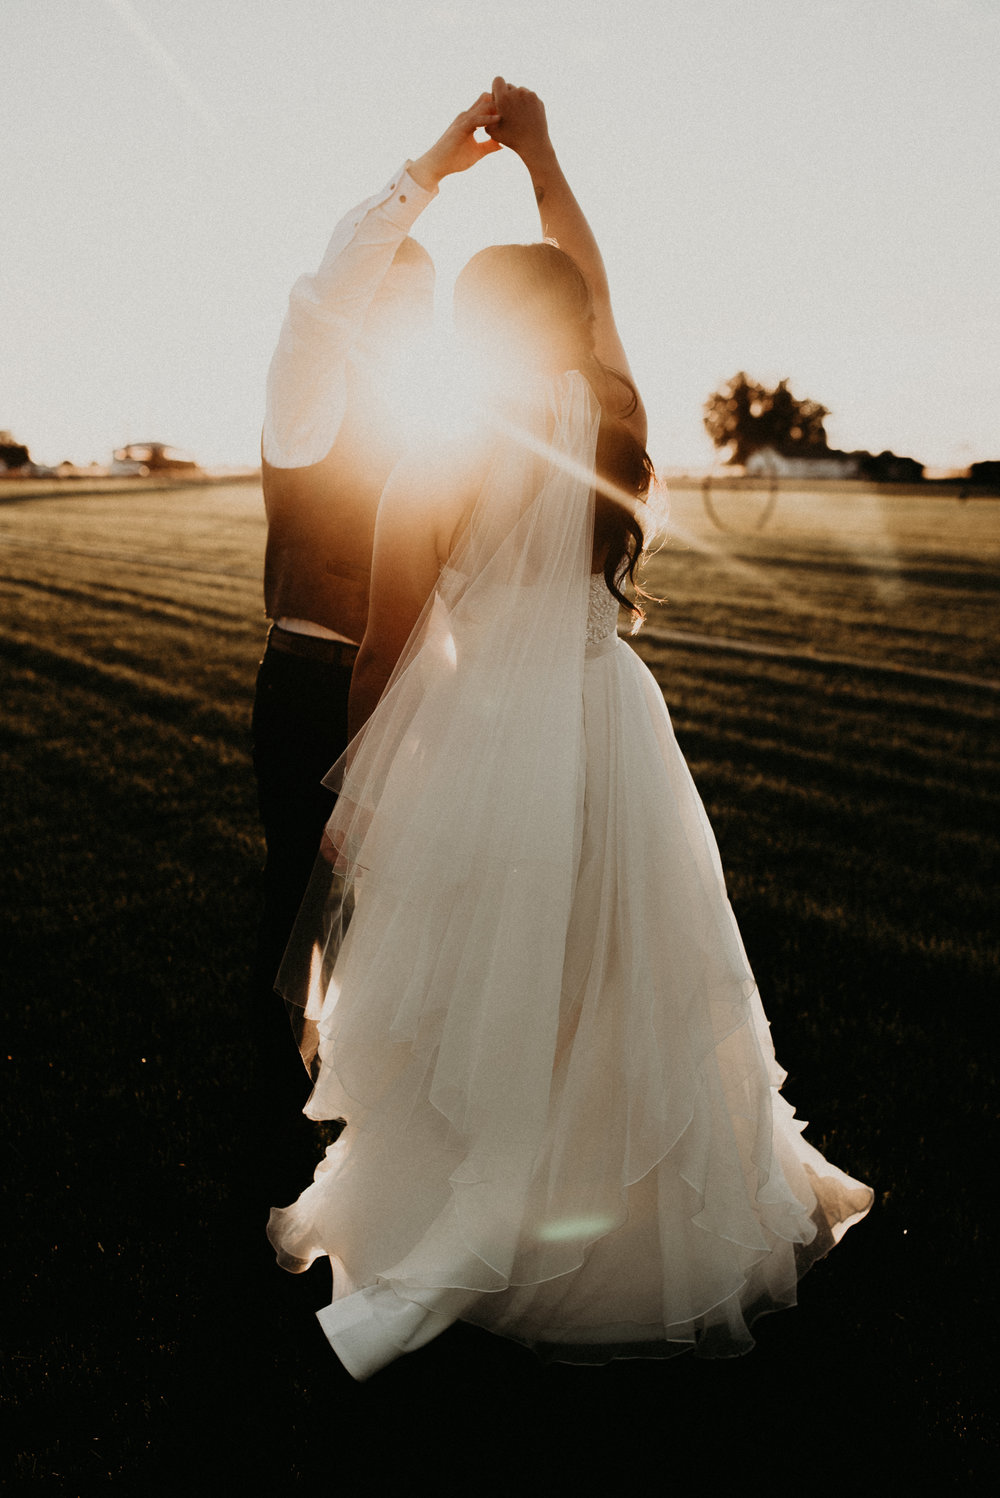 Makayla Madden Photography Dance With Me Boise Wedding Photographer Still Water Hollow Bride Groom White Chapel Wedding Venue Rustic Countryside Wedding Ideas Inspiration Sunflare Golden Hour